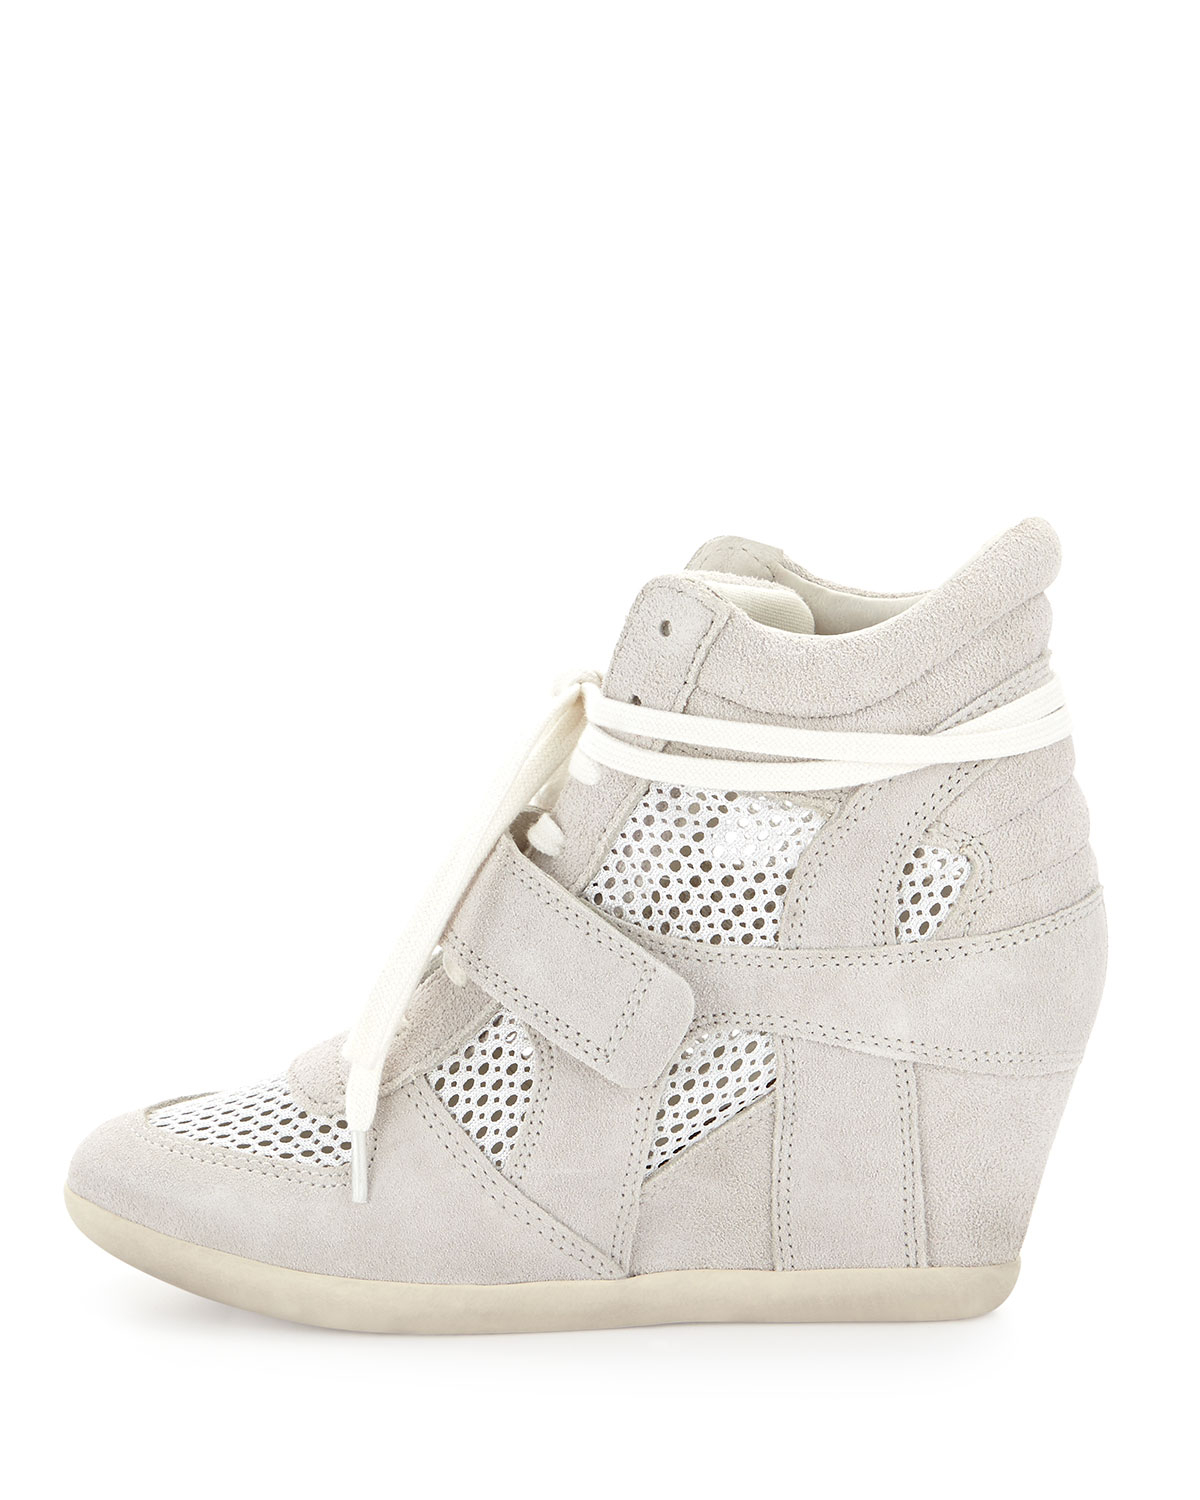 f5811cc7d3209 Lyst - Ash Bowie Mesh Suede Sneaker Wedge in White